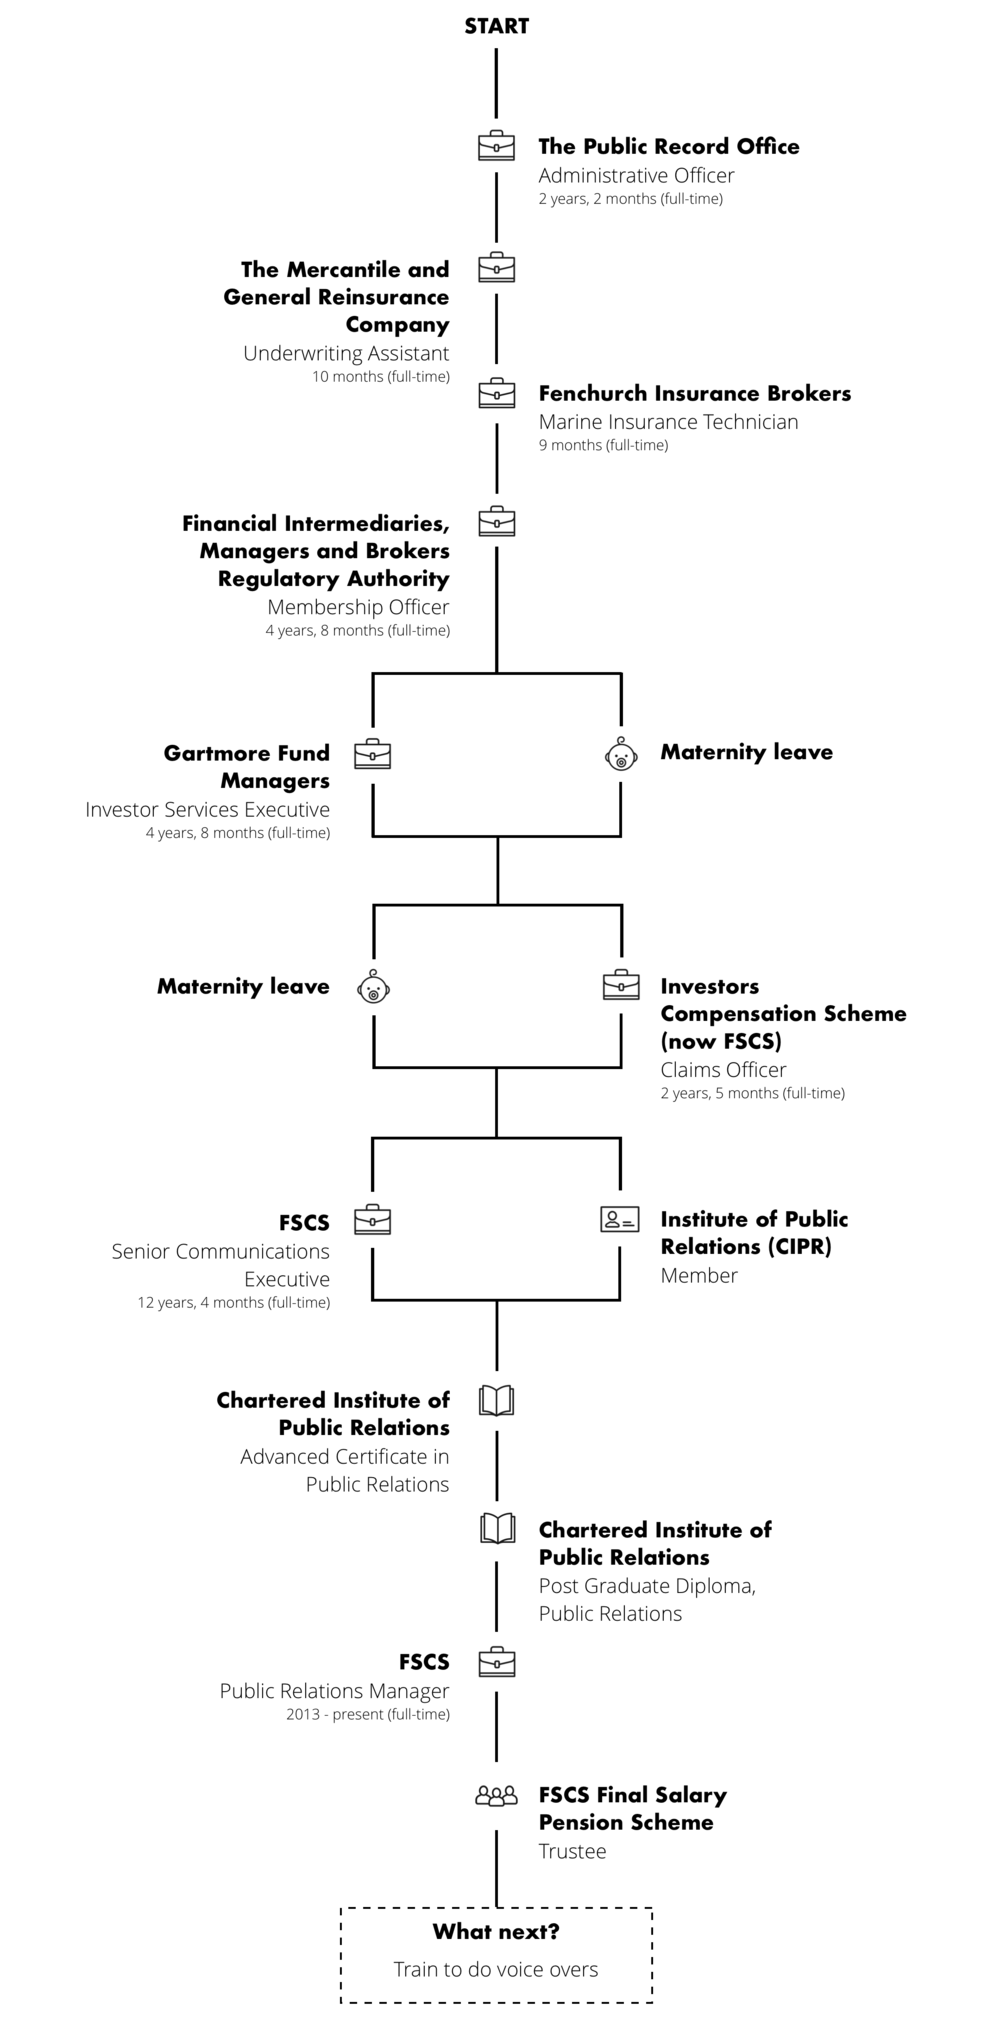 FSCS-renegade-generation-career-journey-map-suzette-browne.png